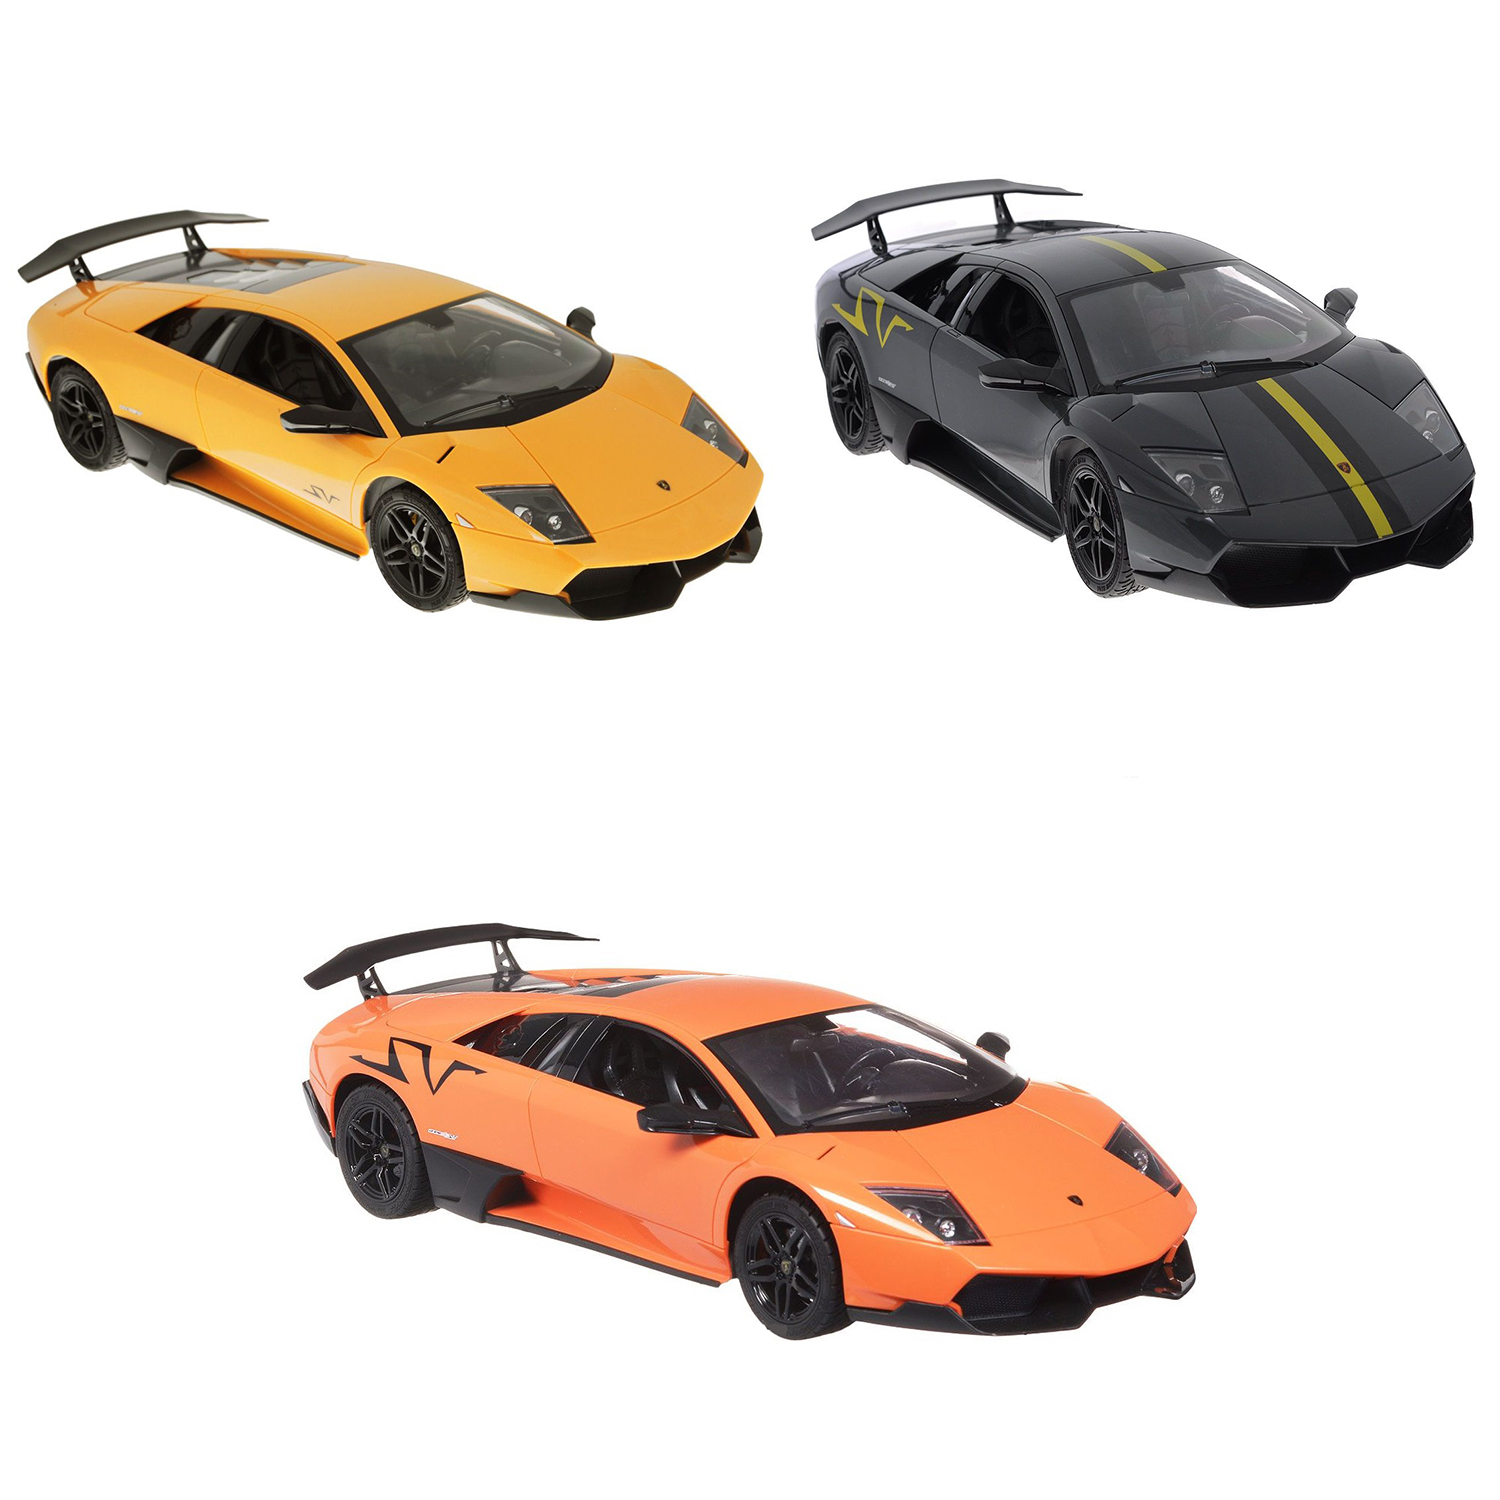 Top Gear Lamborghini